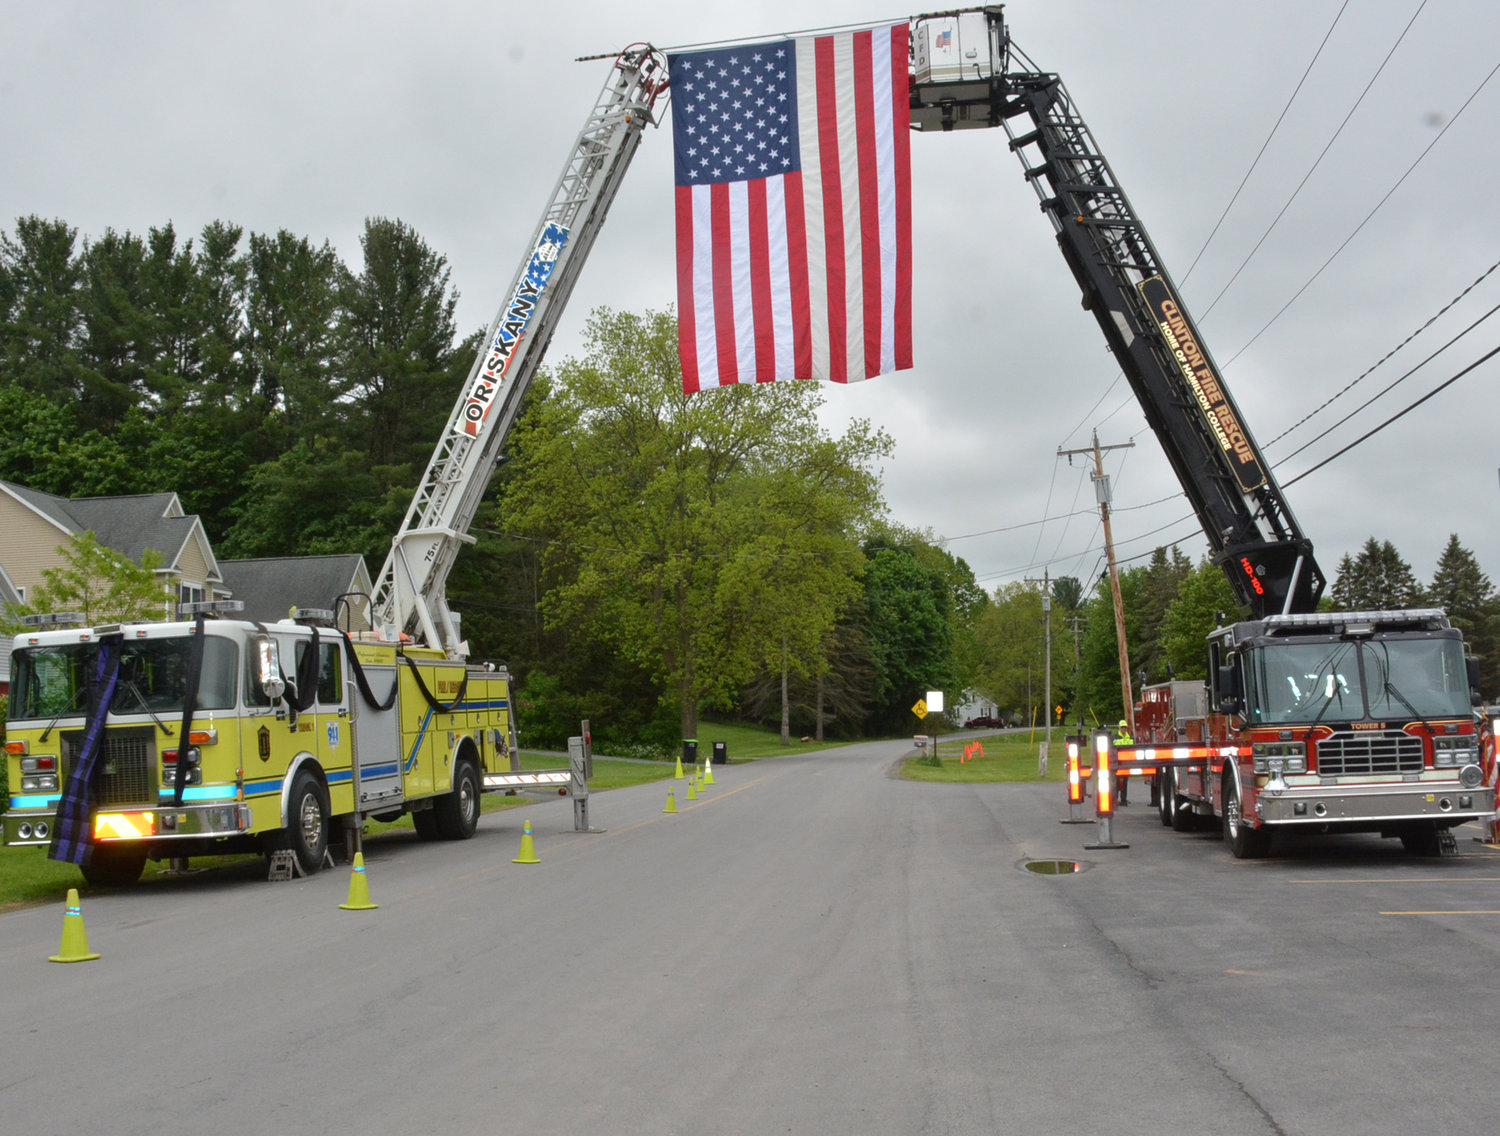 LADDER TRUCK TRIBUTE — The Clinton Fire Department and Oriskany Fire Department came together to honor deceased Willowvale Fire Co. Fire Chief Wayne Smoulcey on Franklin Avenue in Clinton on Wednesday, May 29. A funeral procession carrying the honored dead travelled underneath the tribute en route to the Sunset Hill Cemetery.